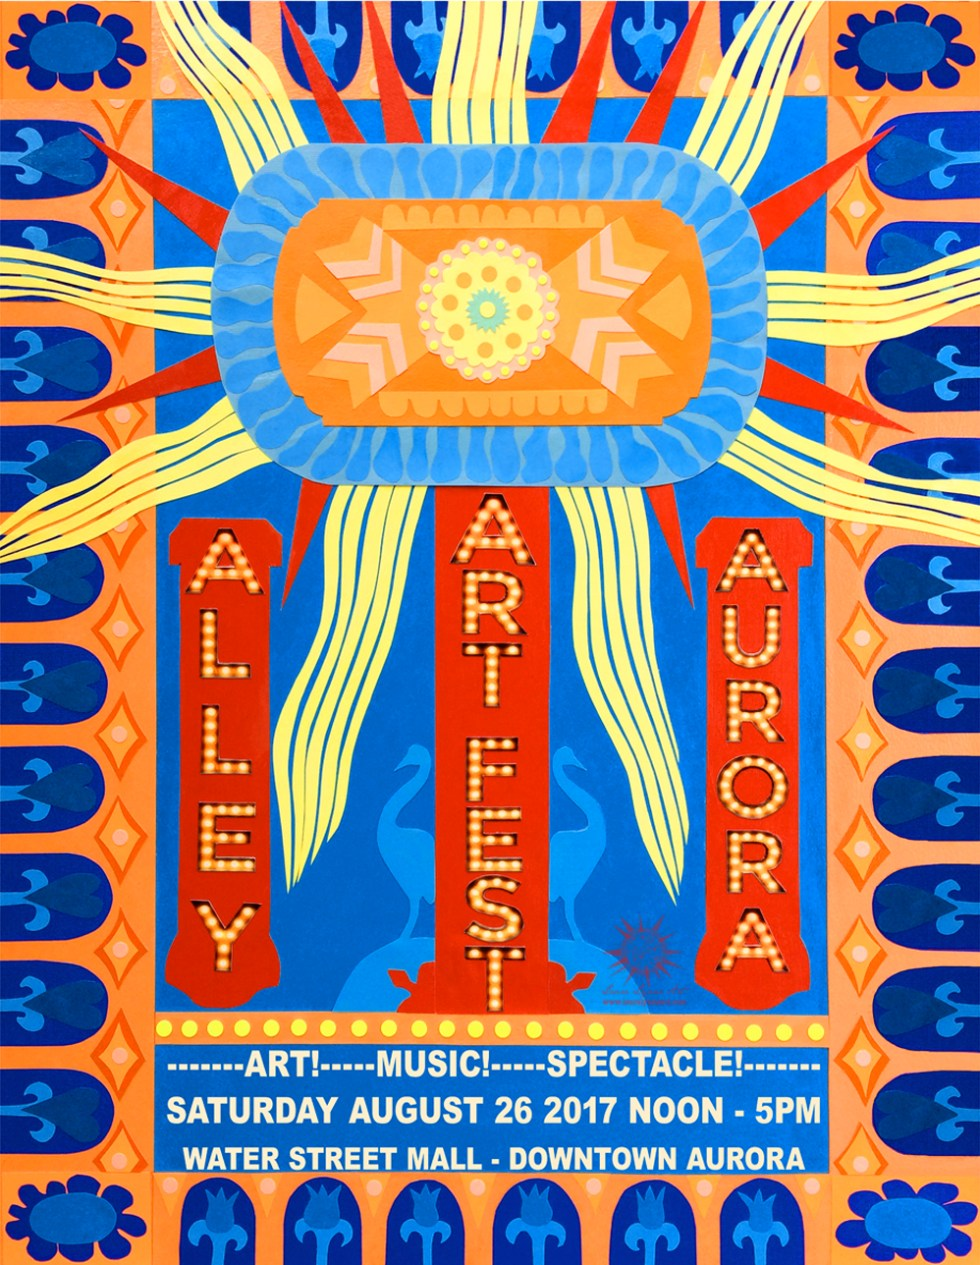 Alley Art Fest Poster Design 2017 based on Paramount Theater Light by Laura Lynne Art